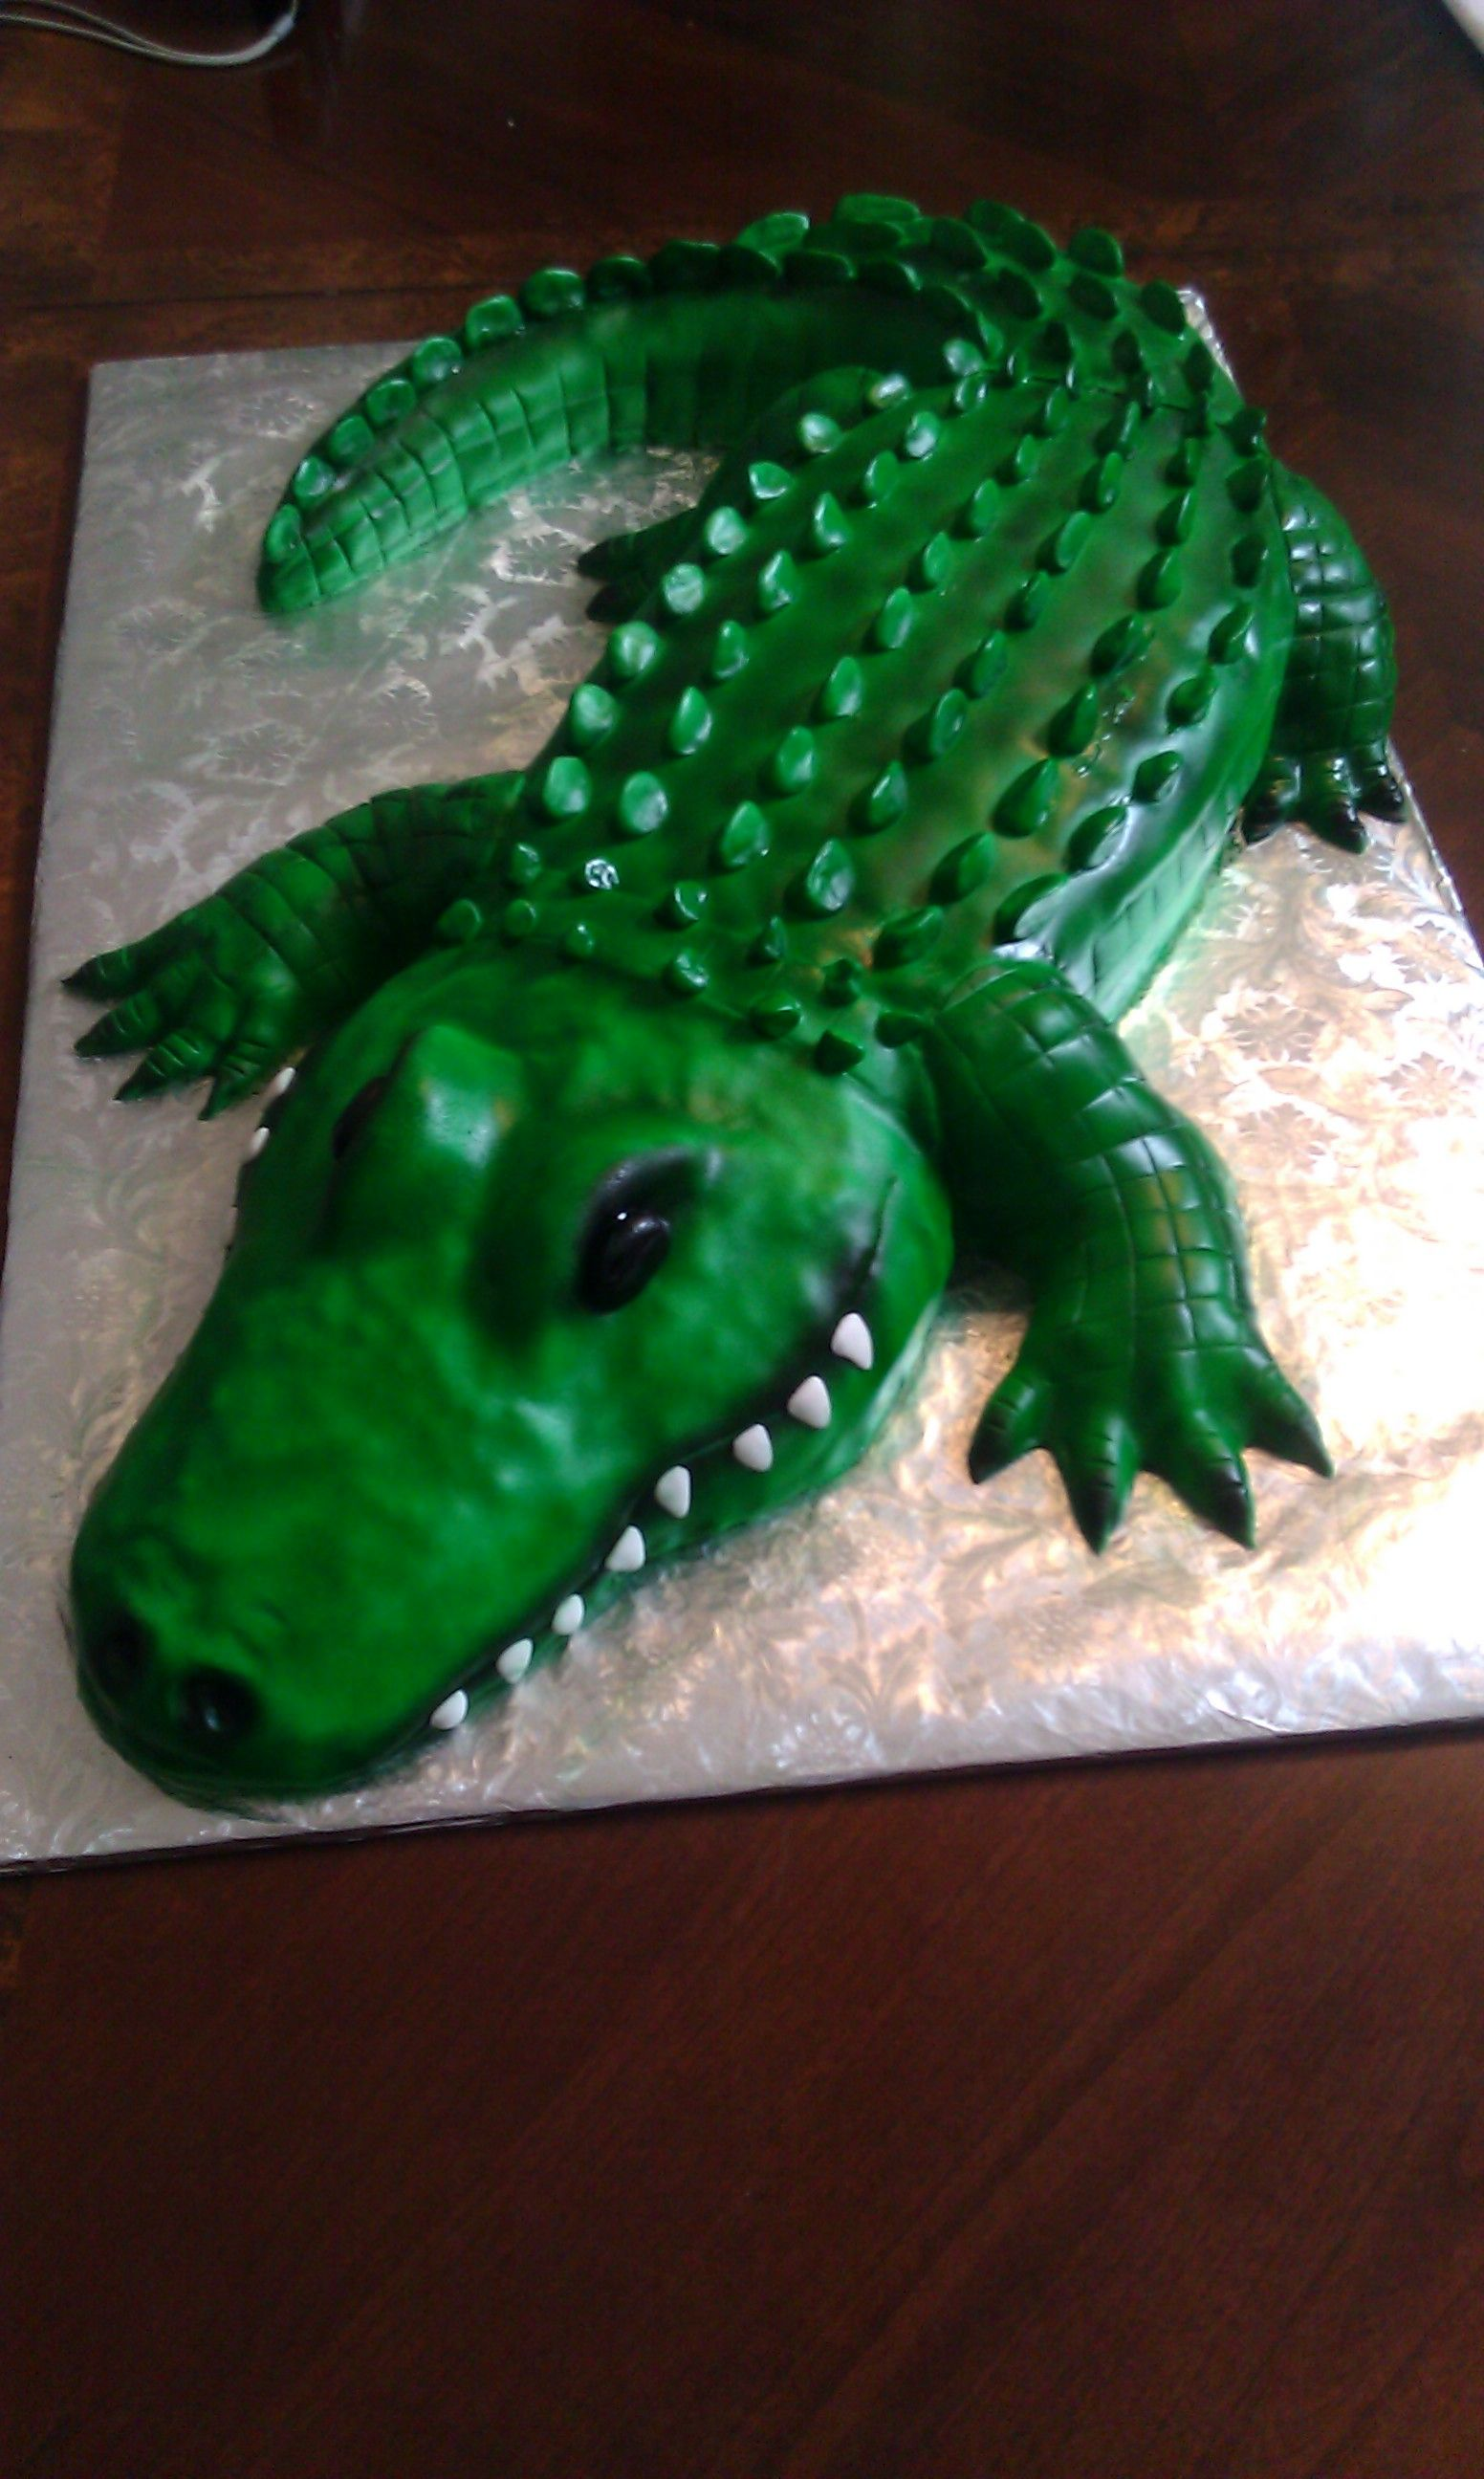 Alligator Cake The Alligator Cake Was Made Using An